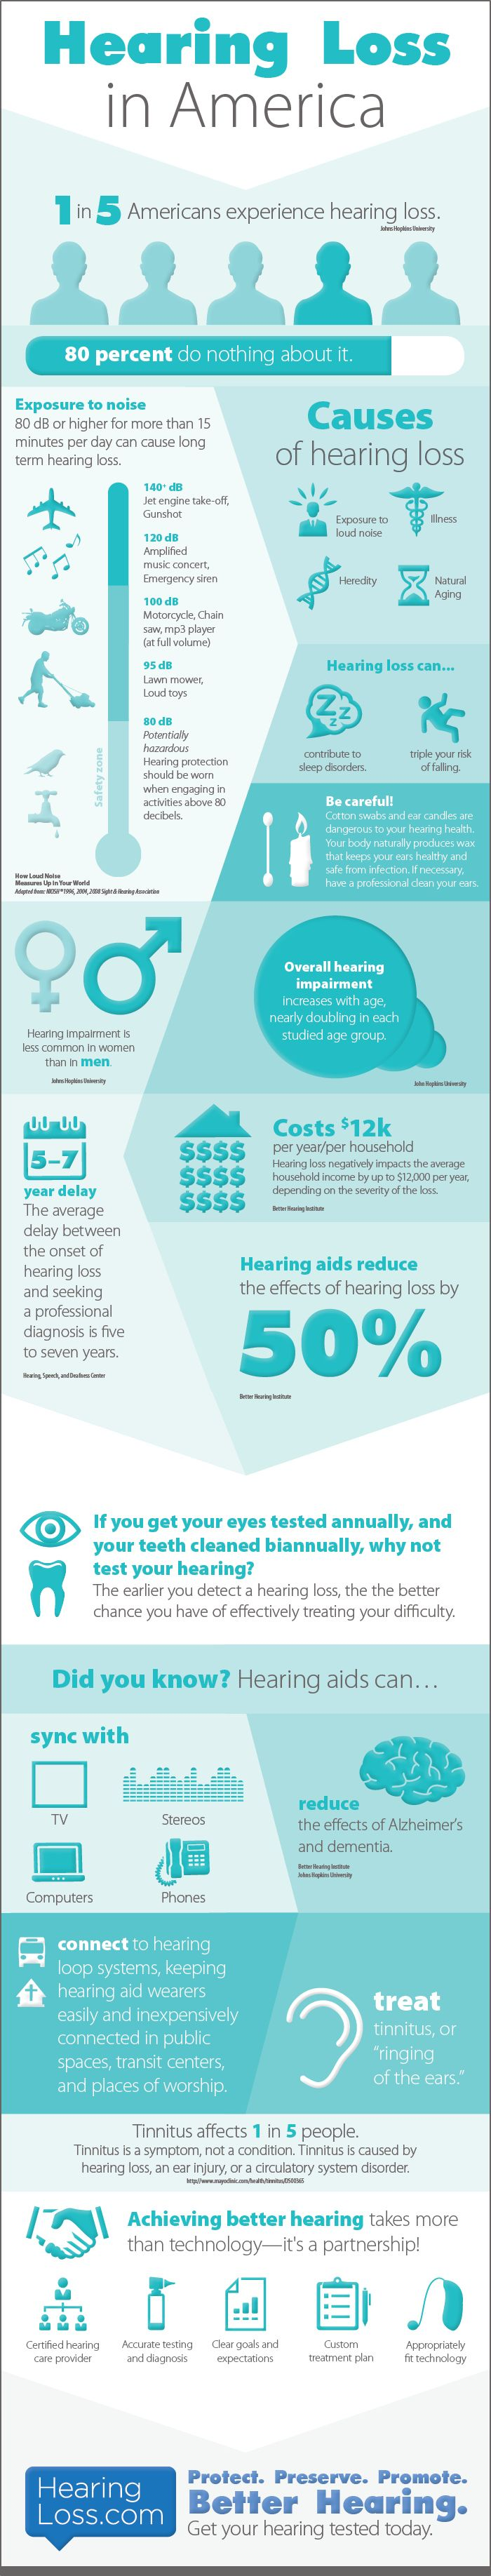 INFOGRAPHIC - Hearing Loss in America. One in five Americans experience hearing loss according to www.hearingloss.com.